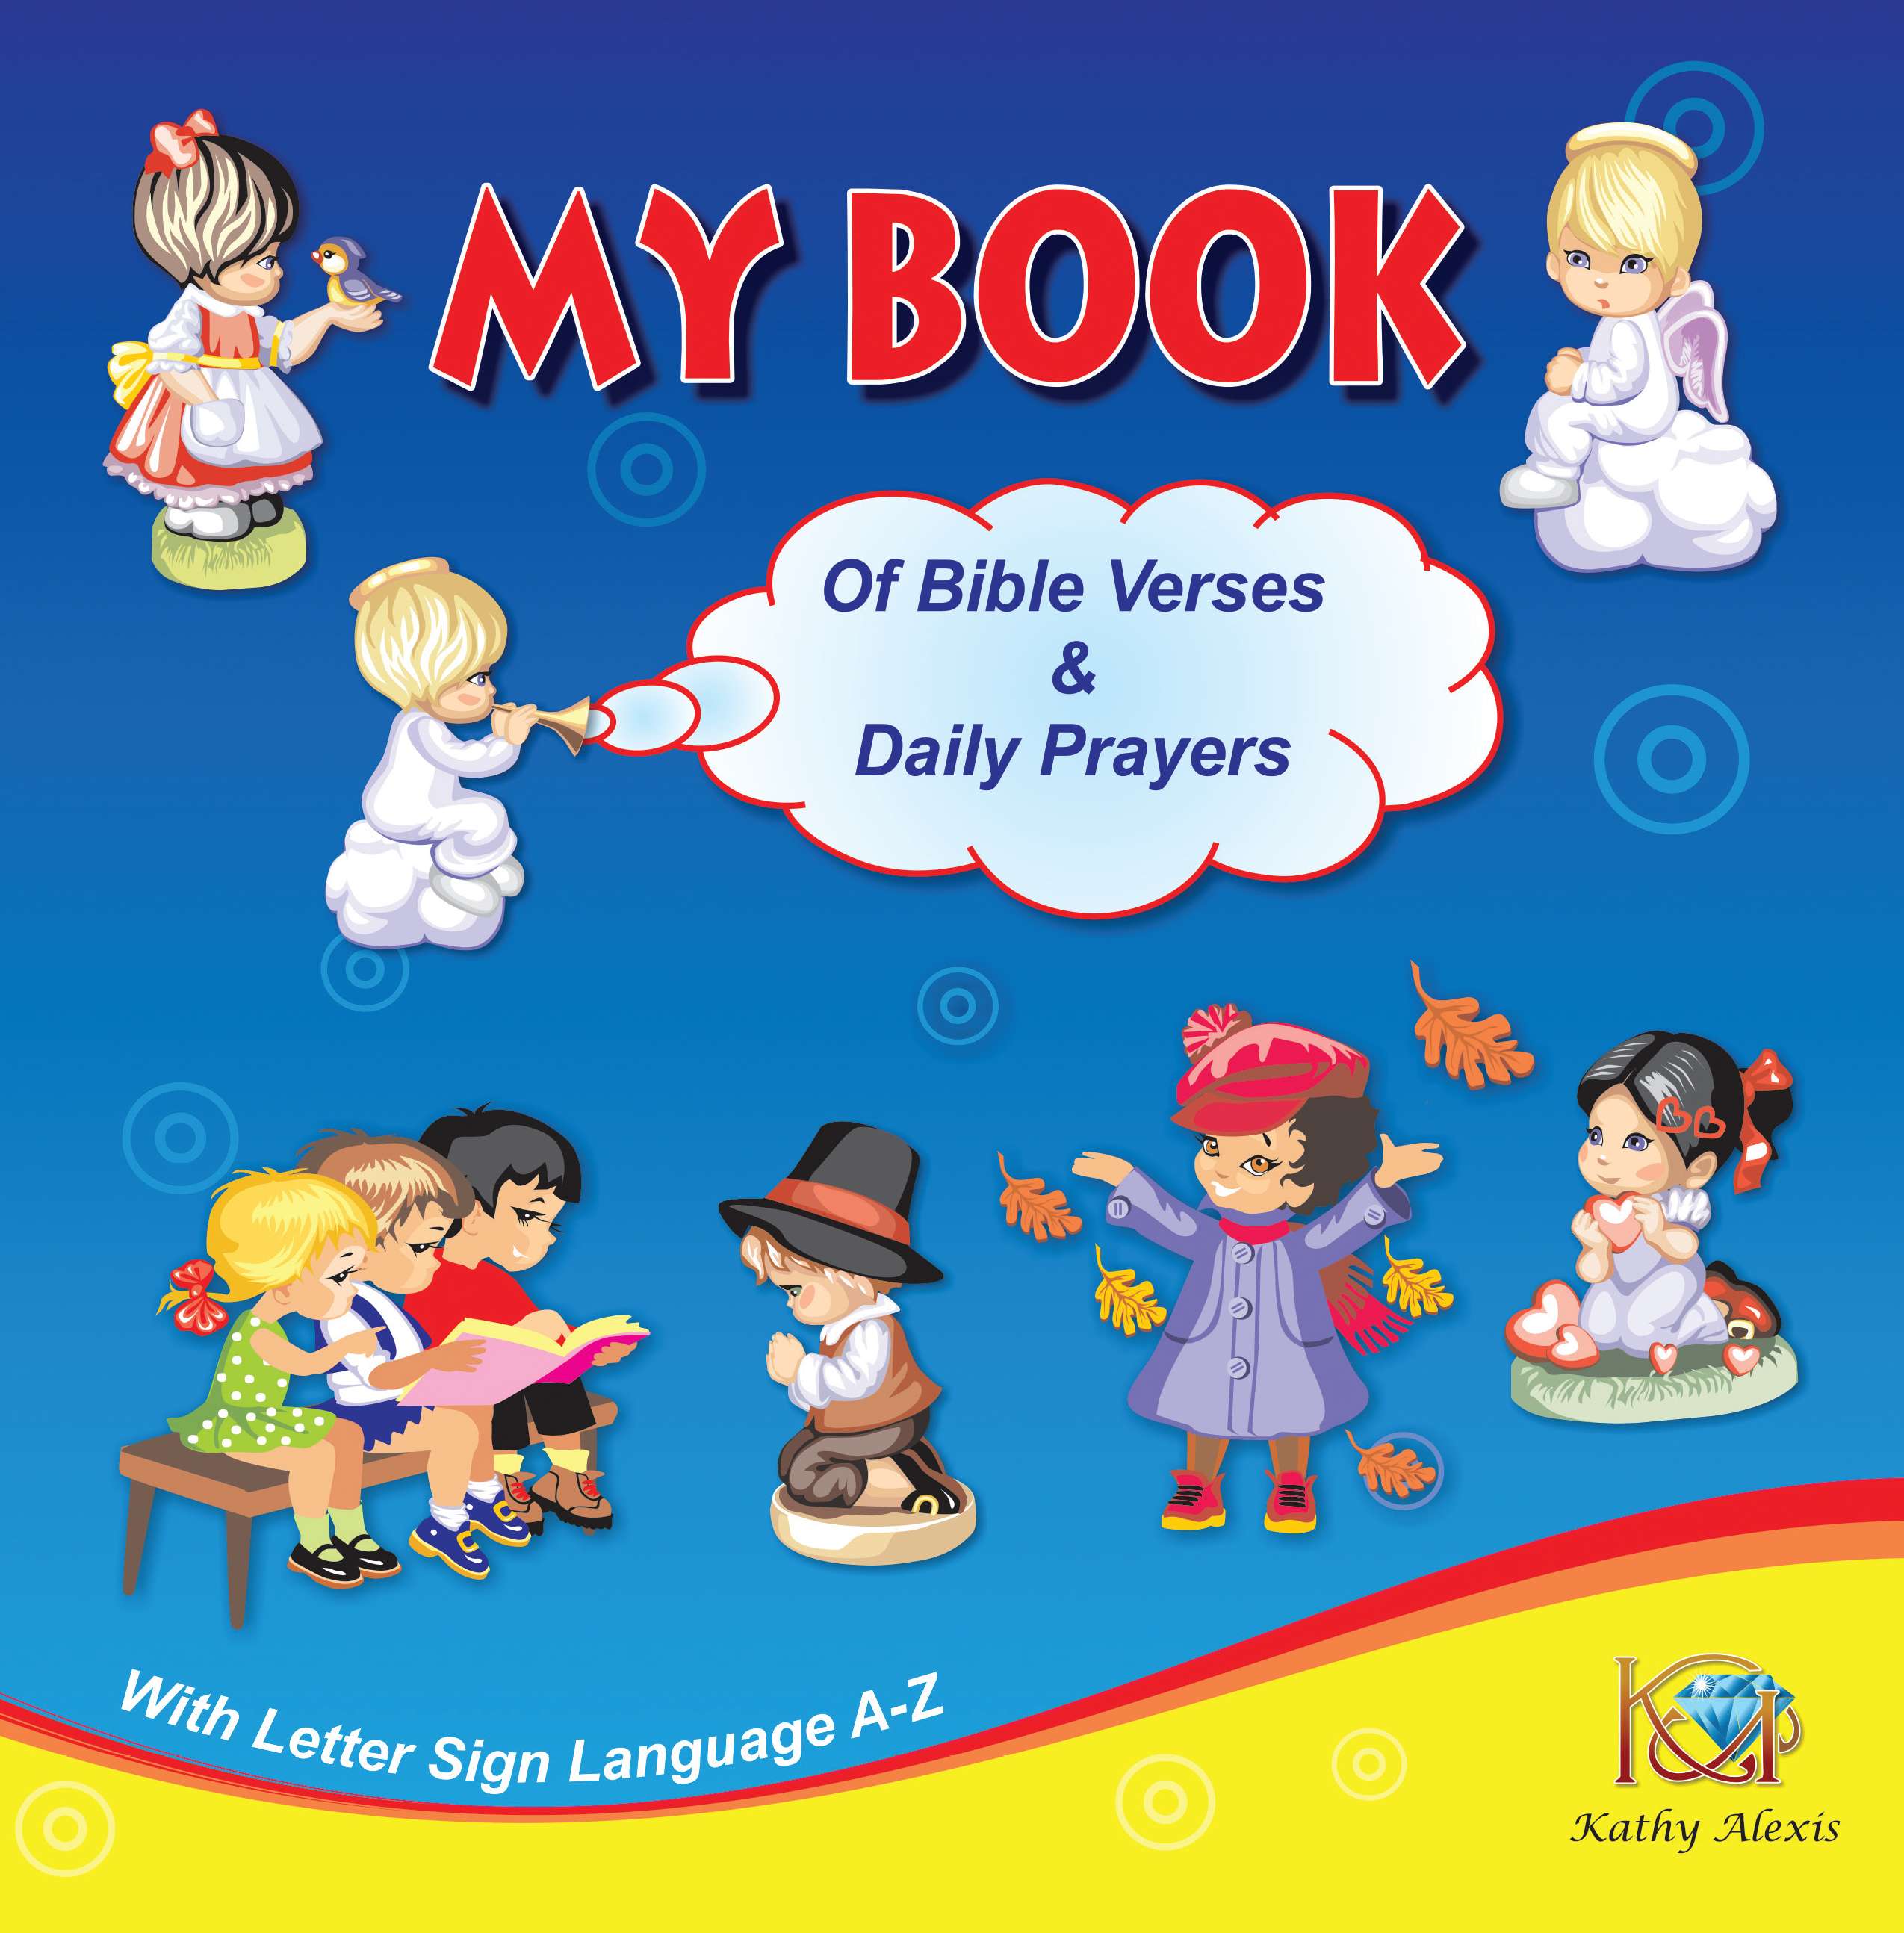 My Book of Bible Verses & Daily Prayers by Kathy Alexis Now on Amazon